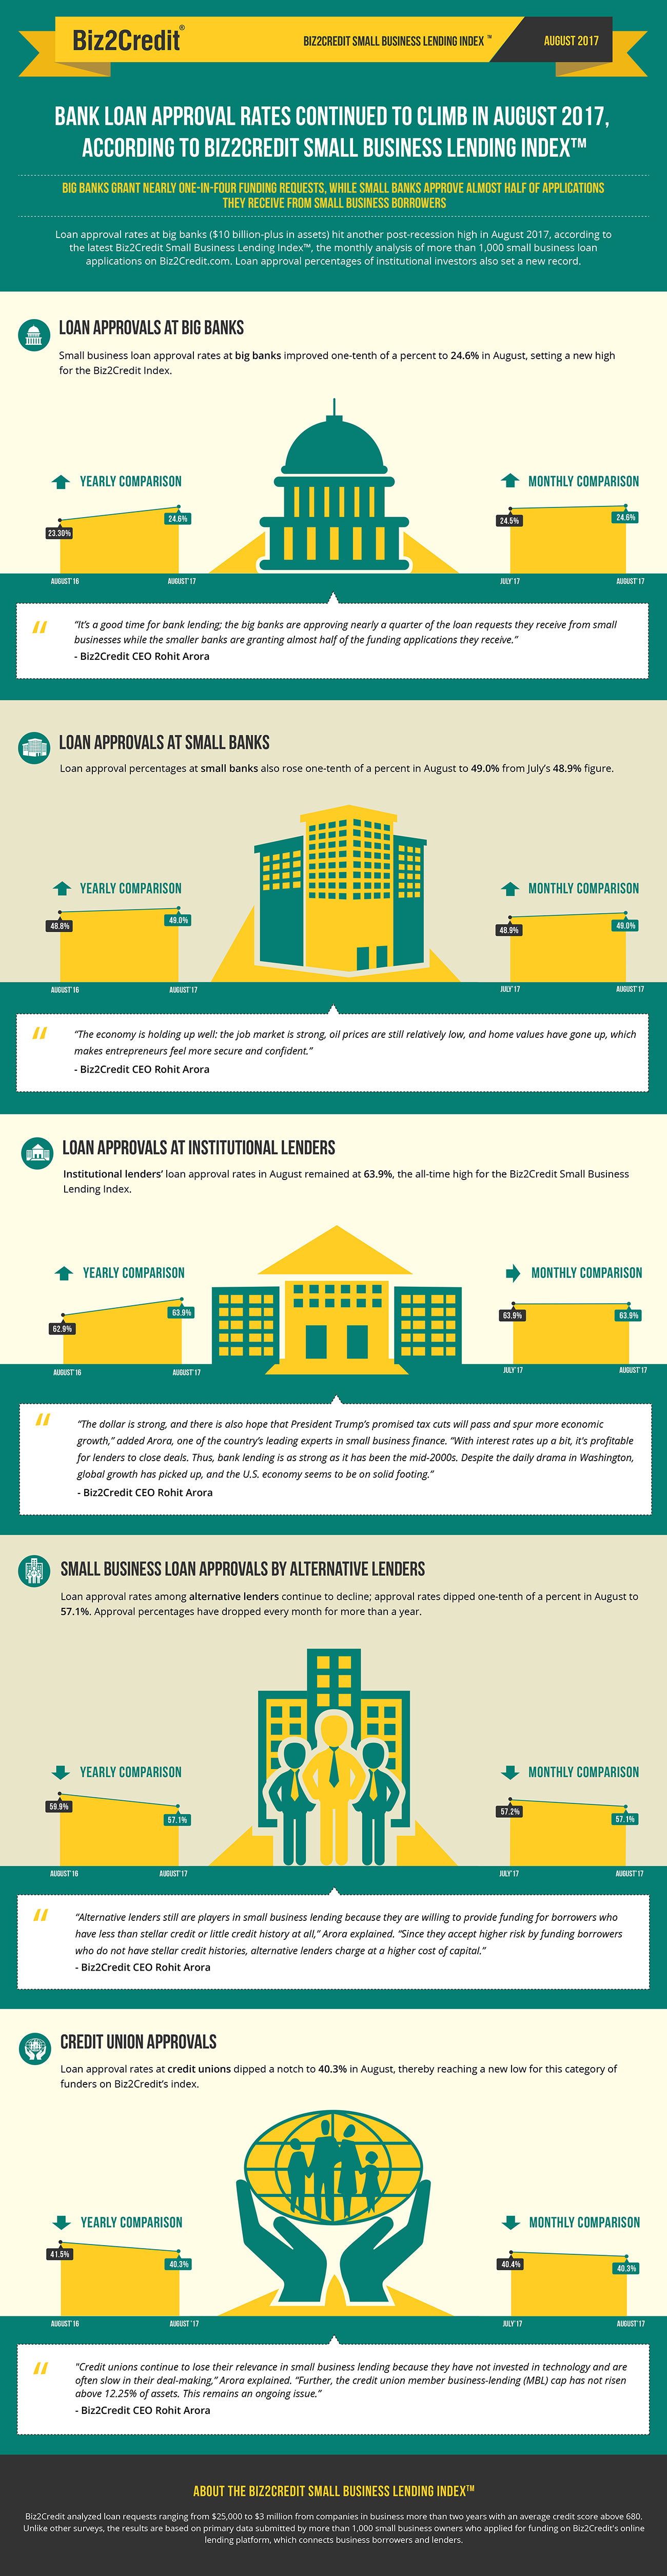 august17 Lending Index Infographic